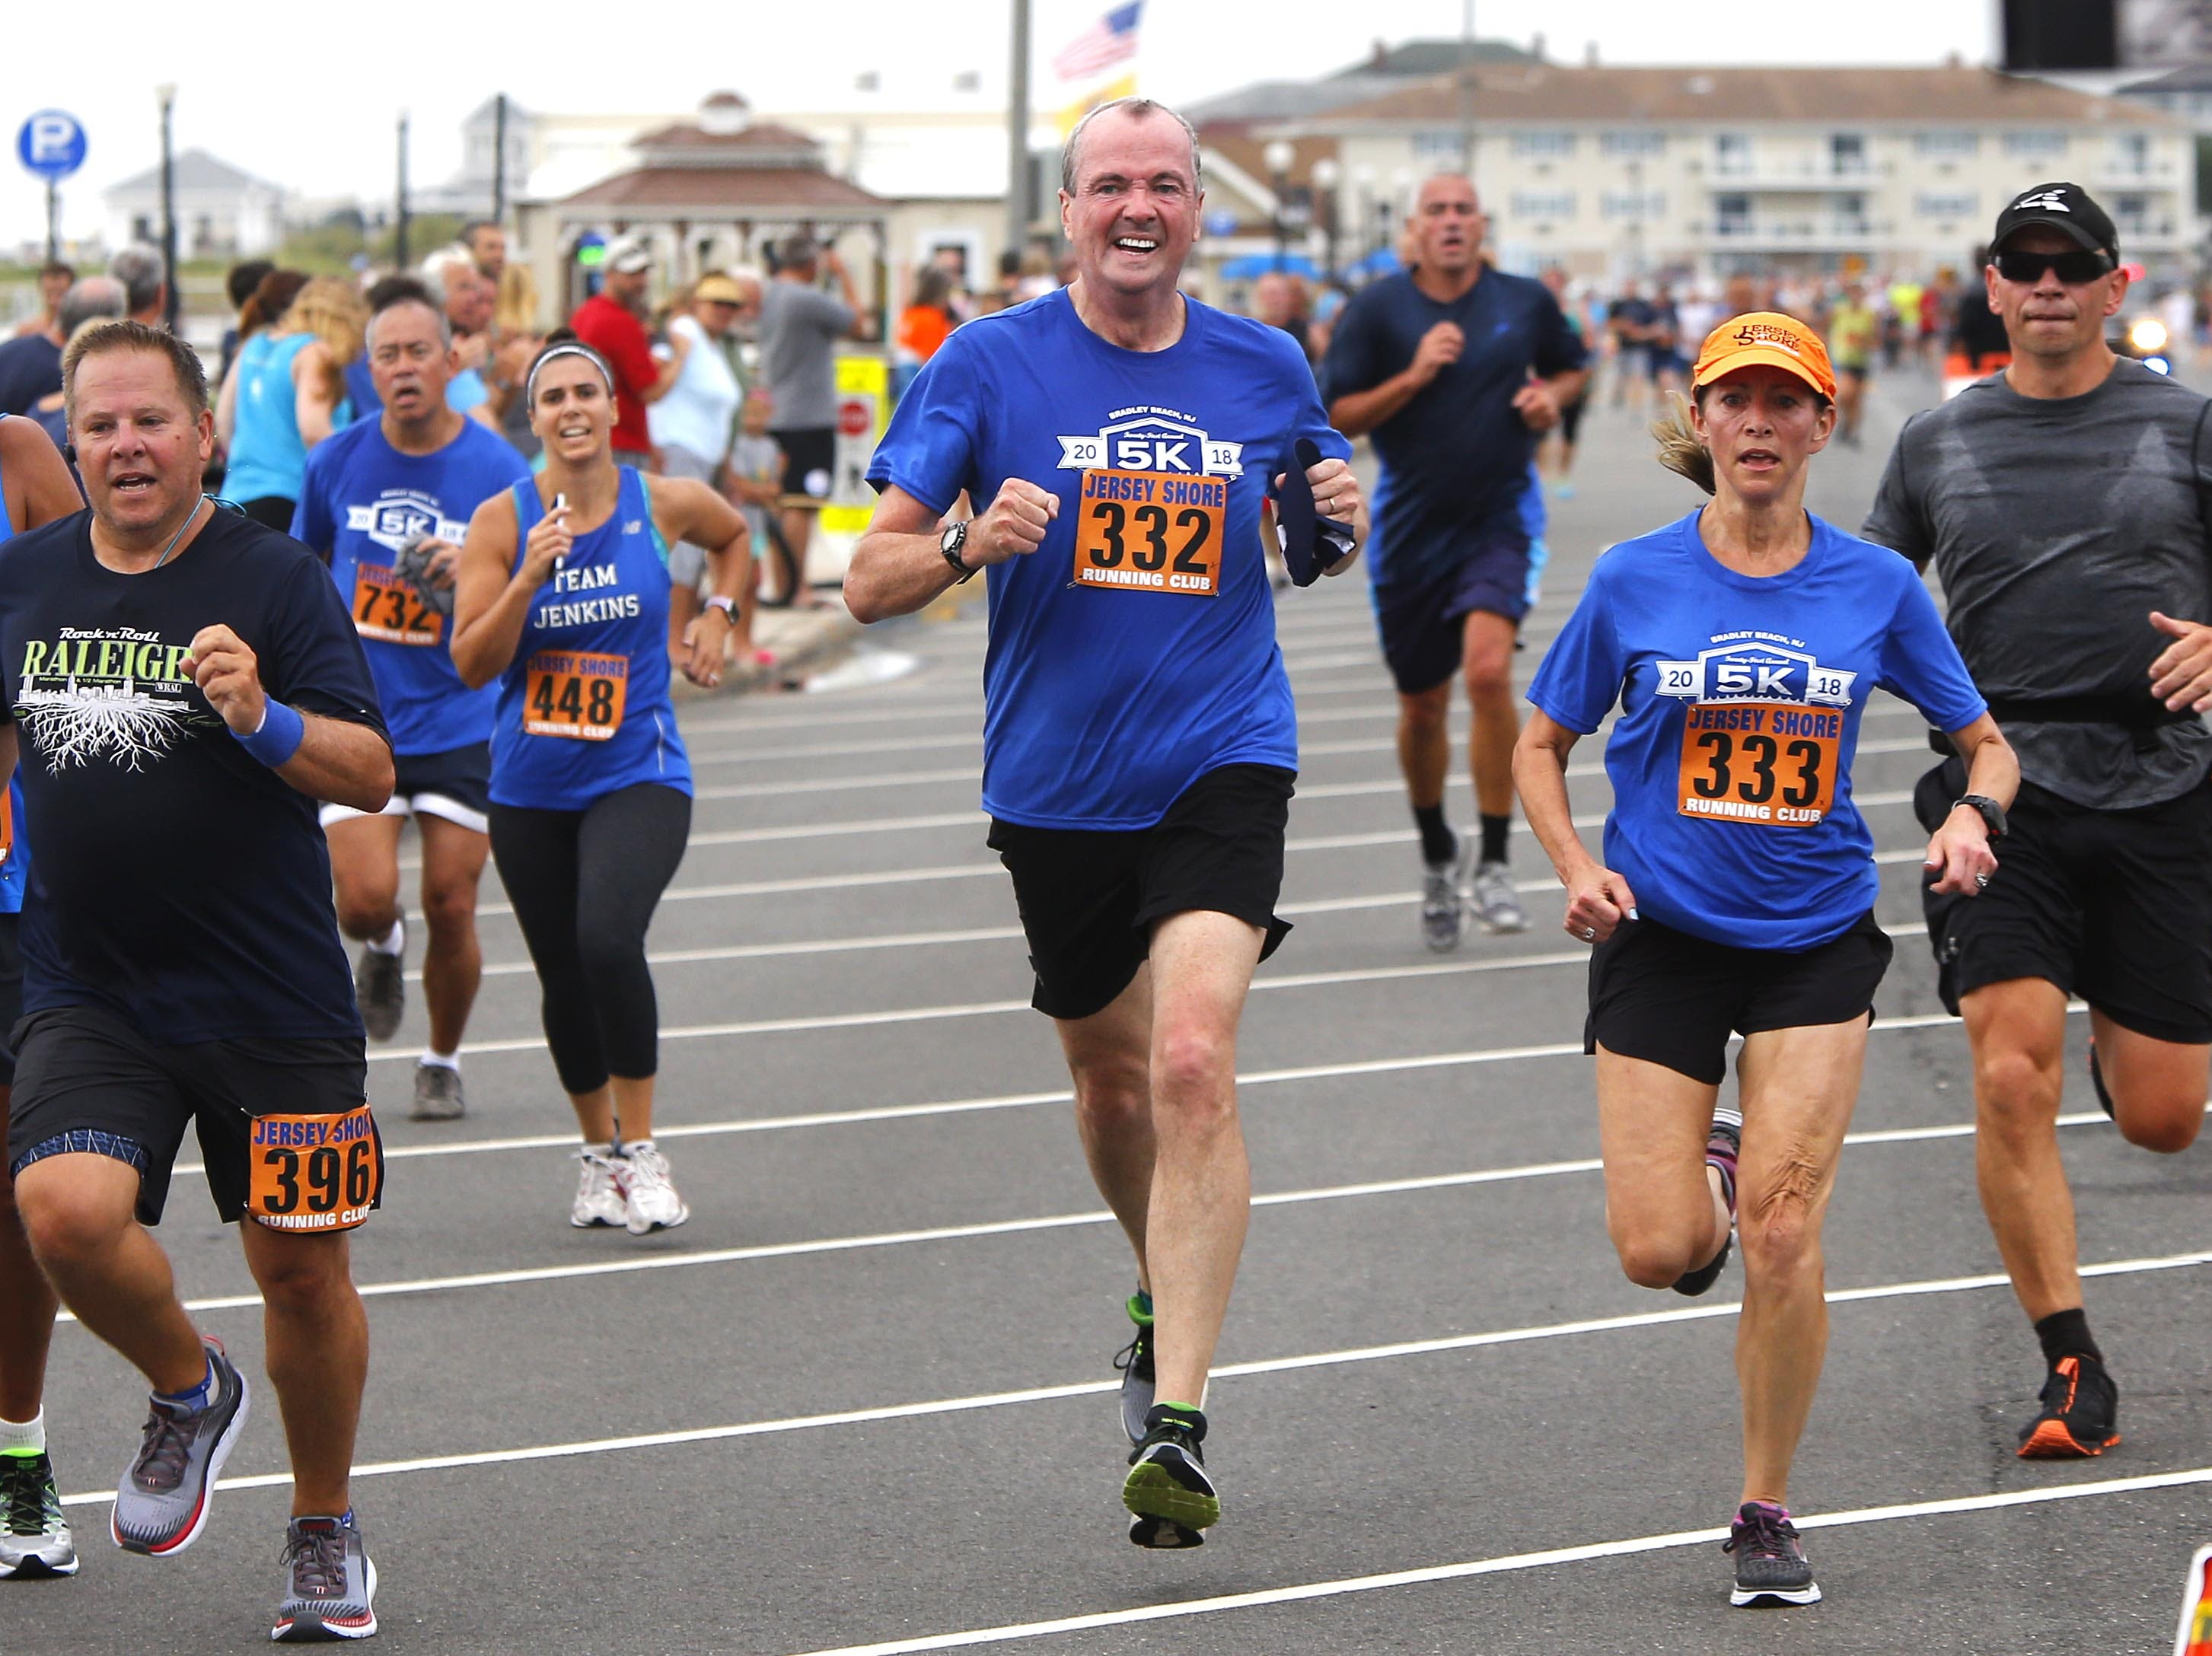 NJ Gov. Phil Murphy (center) approaches the finish line for the Bradley Beach 5K race Saturday, Aug. 17, 2018.